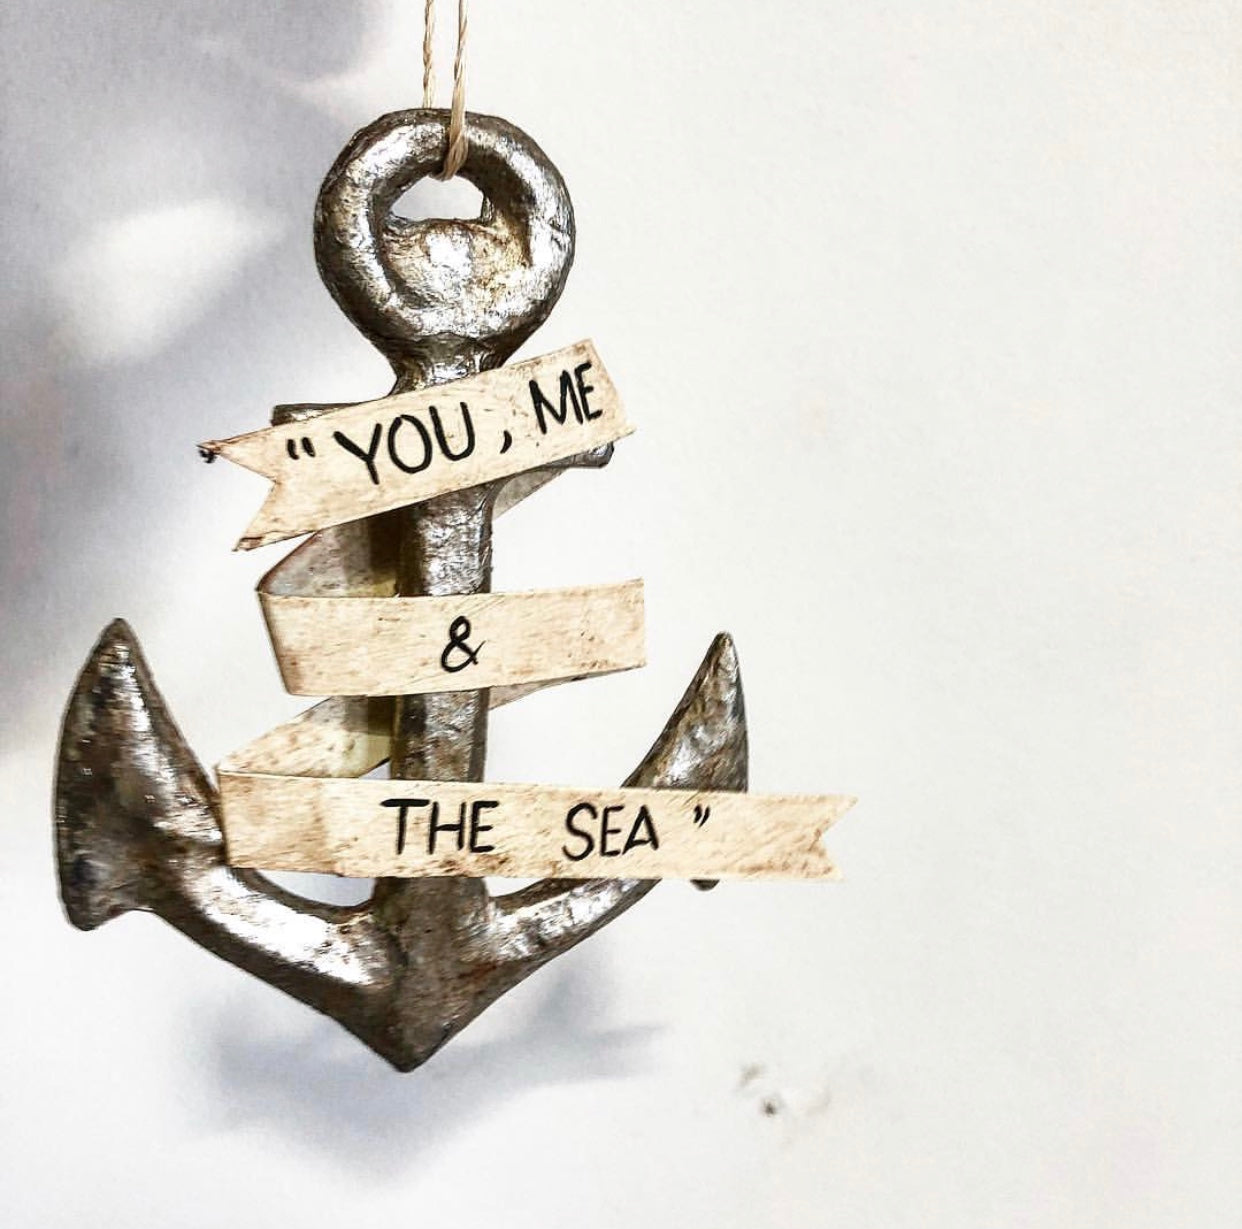 You Me And The Sea Anchor Ornament